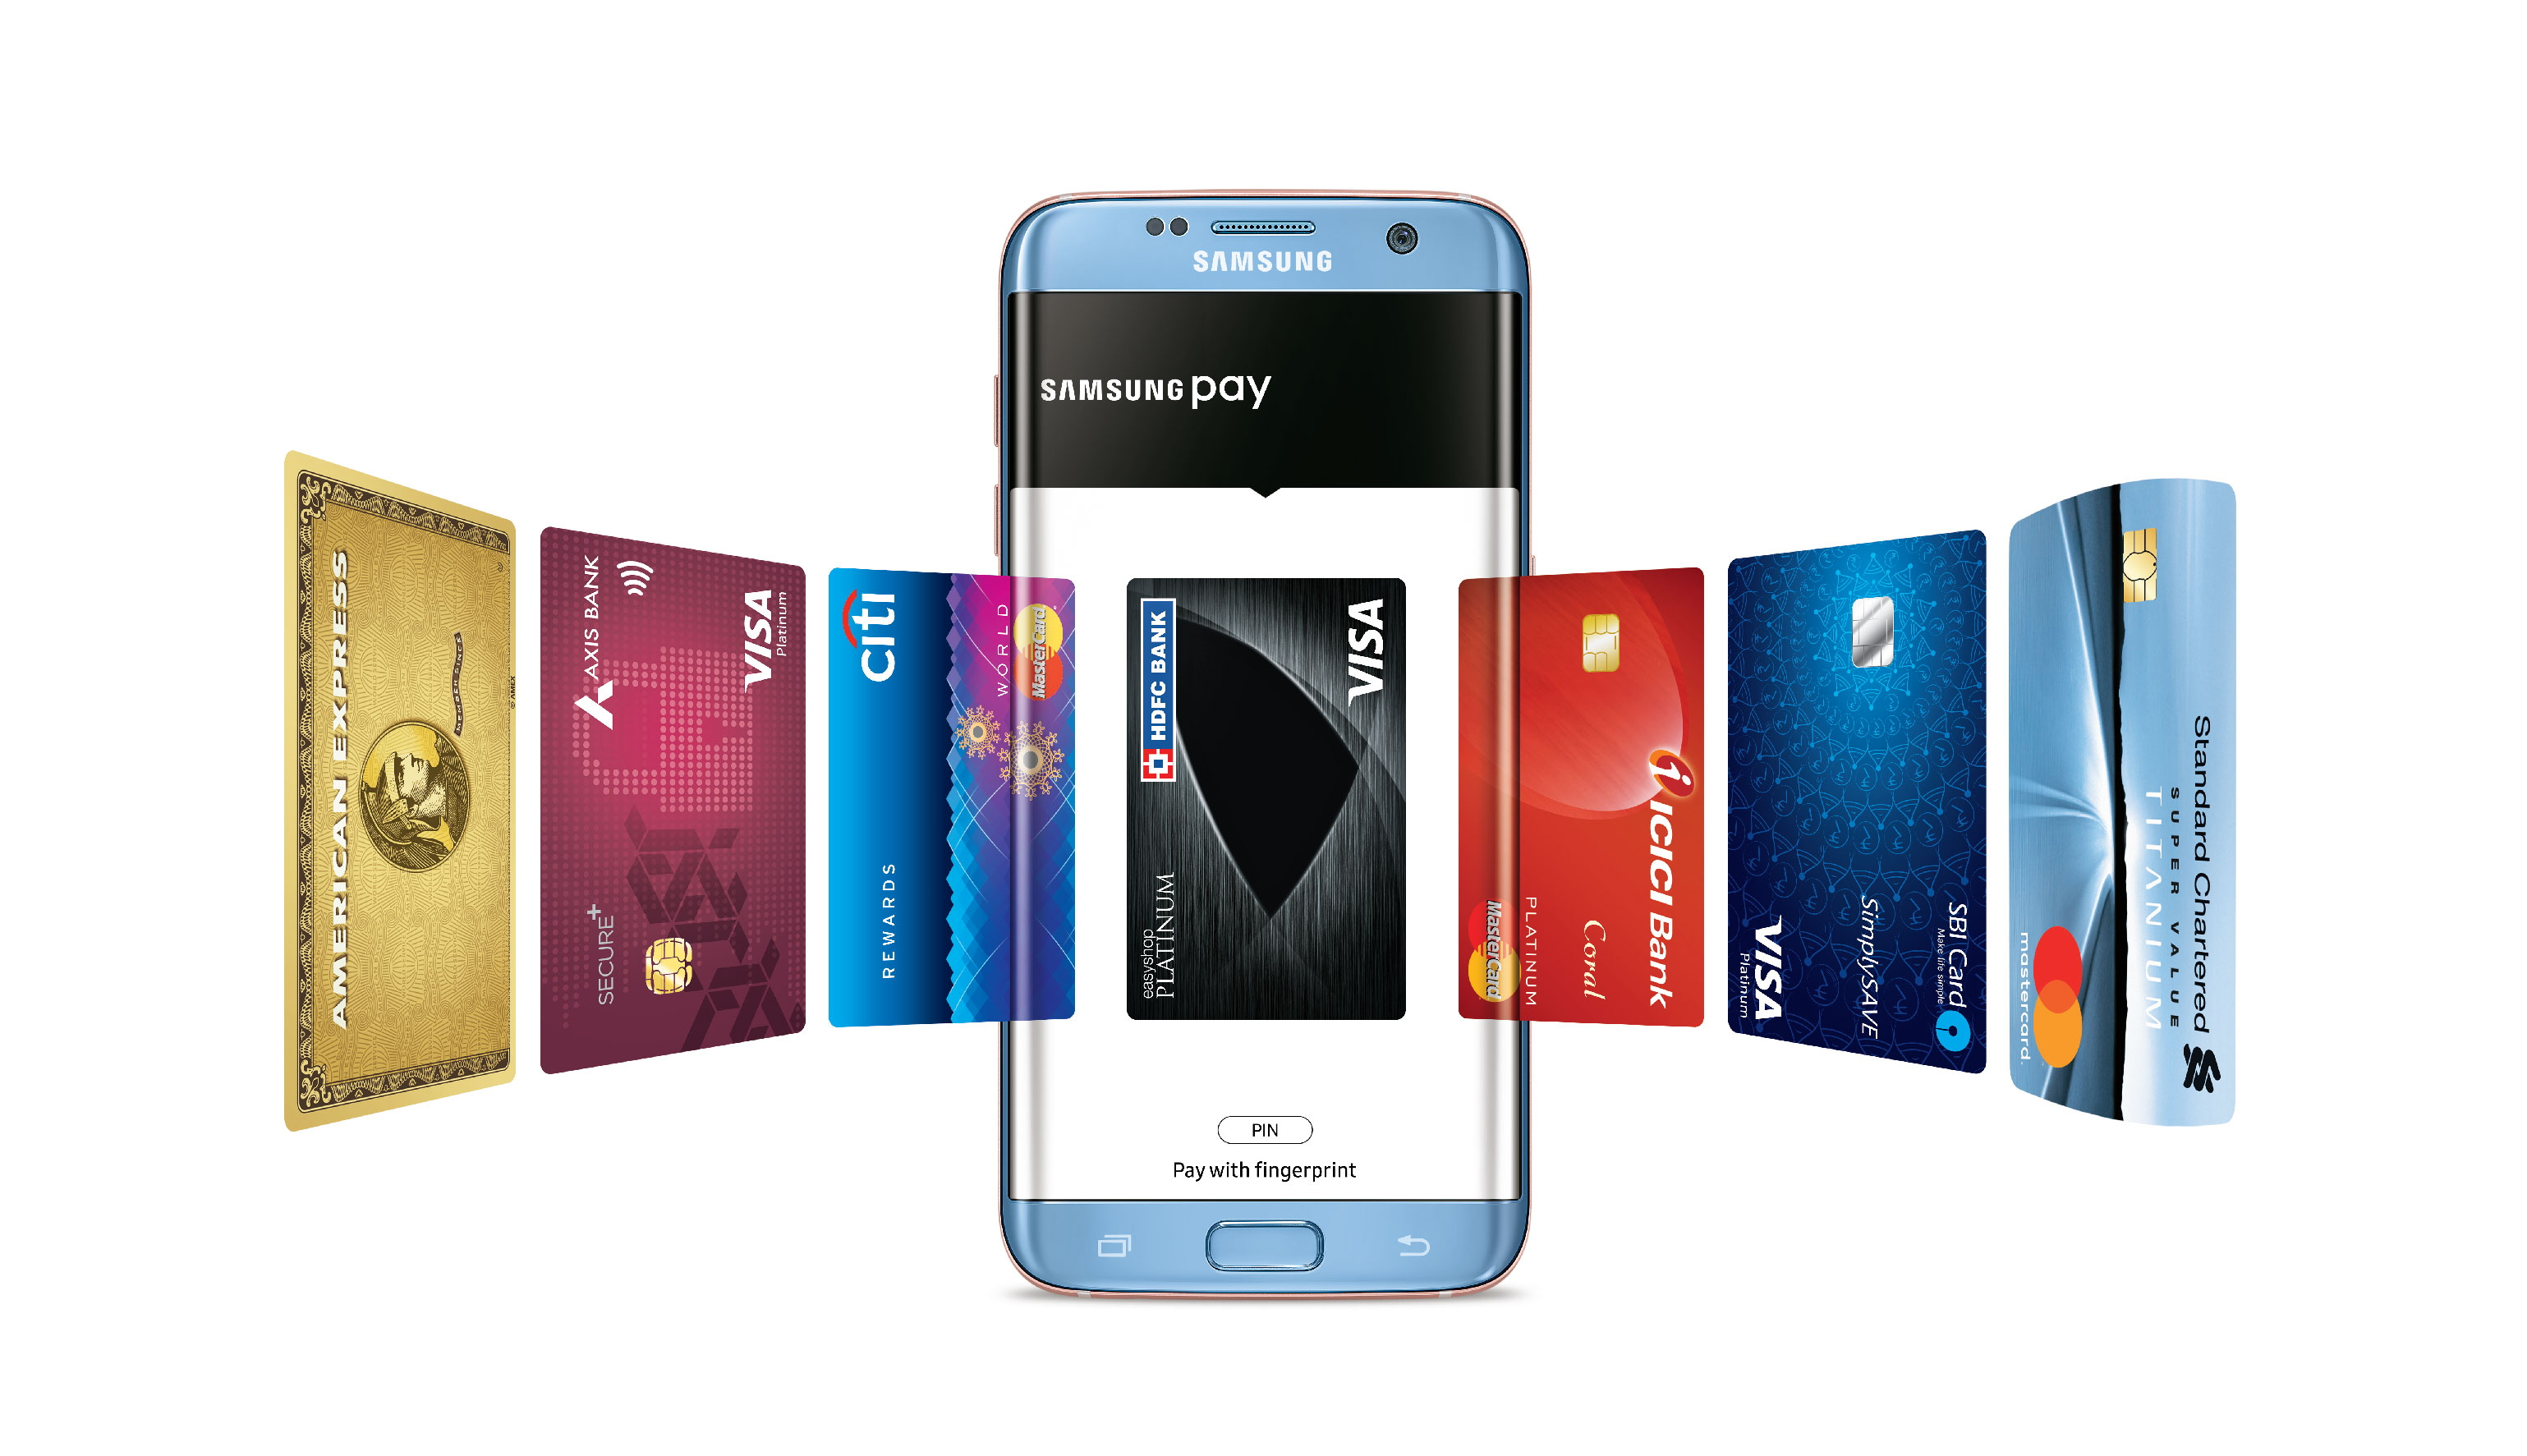 Samsung Launches its Mobile Payments Service Samsung Pay in